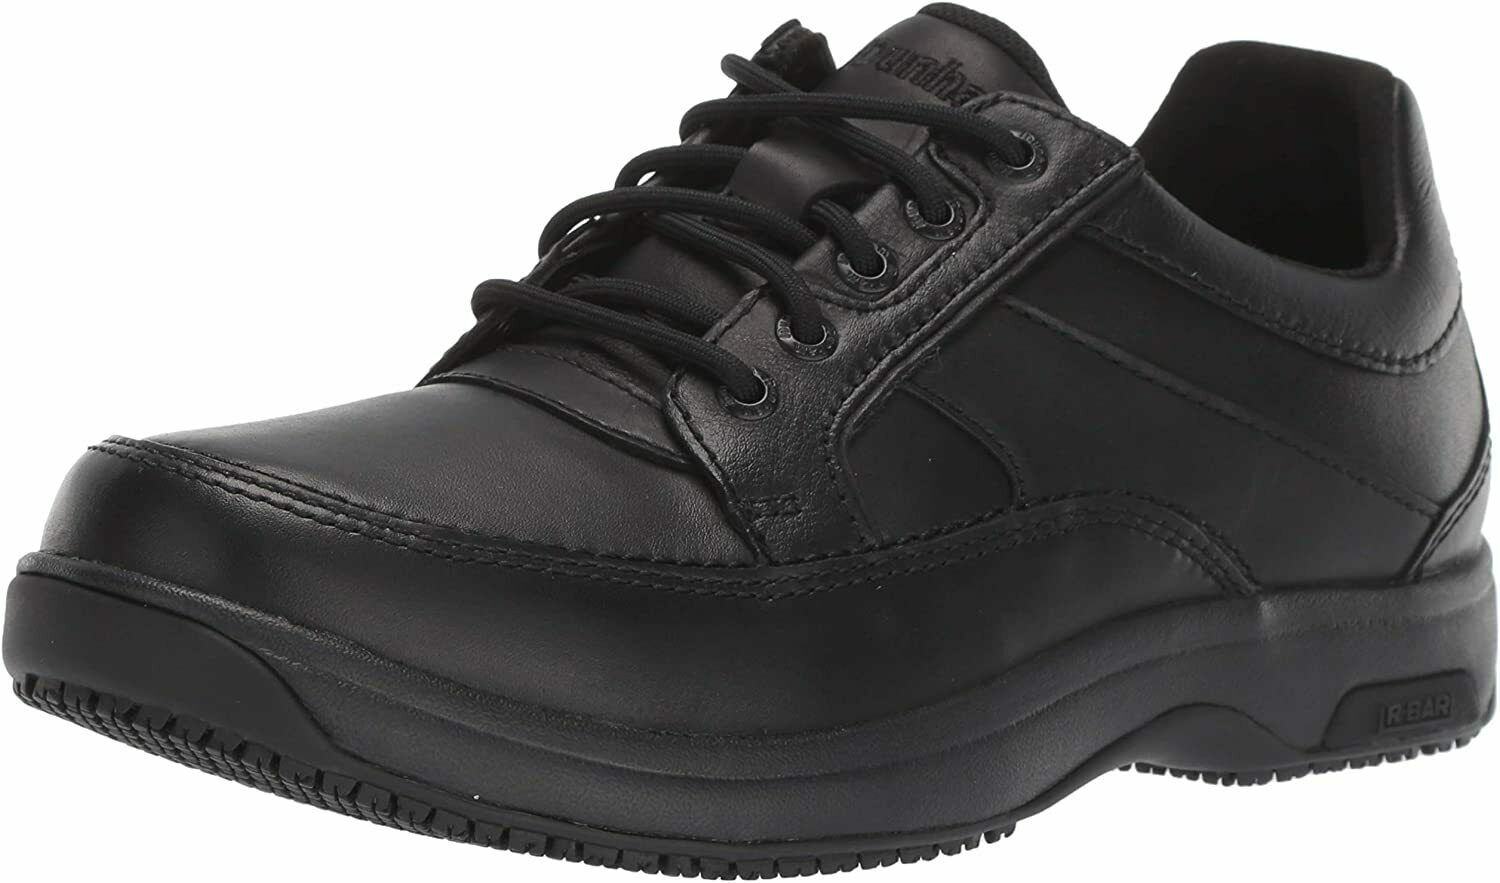 Primary image for Mens Dunham Midland Service Sneaker - Black Leather, Size 8.5D US [CH4763]